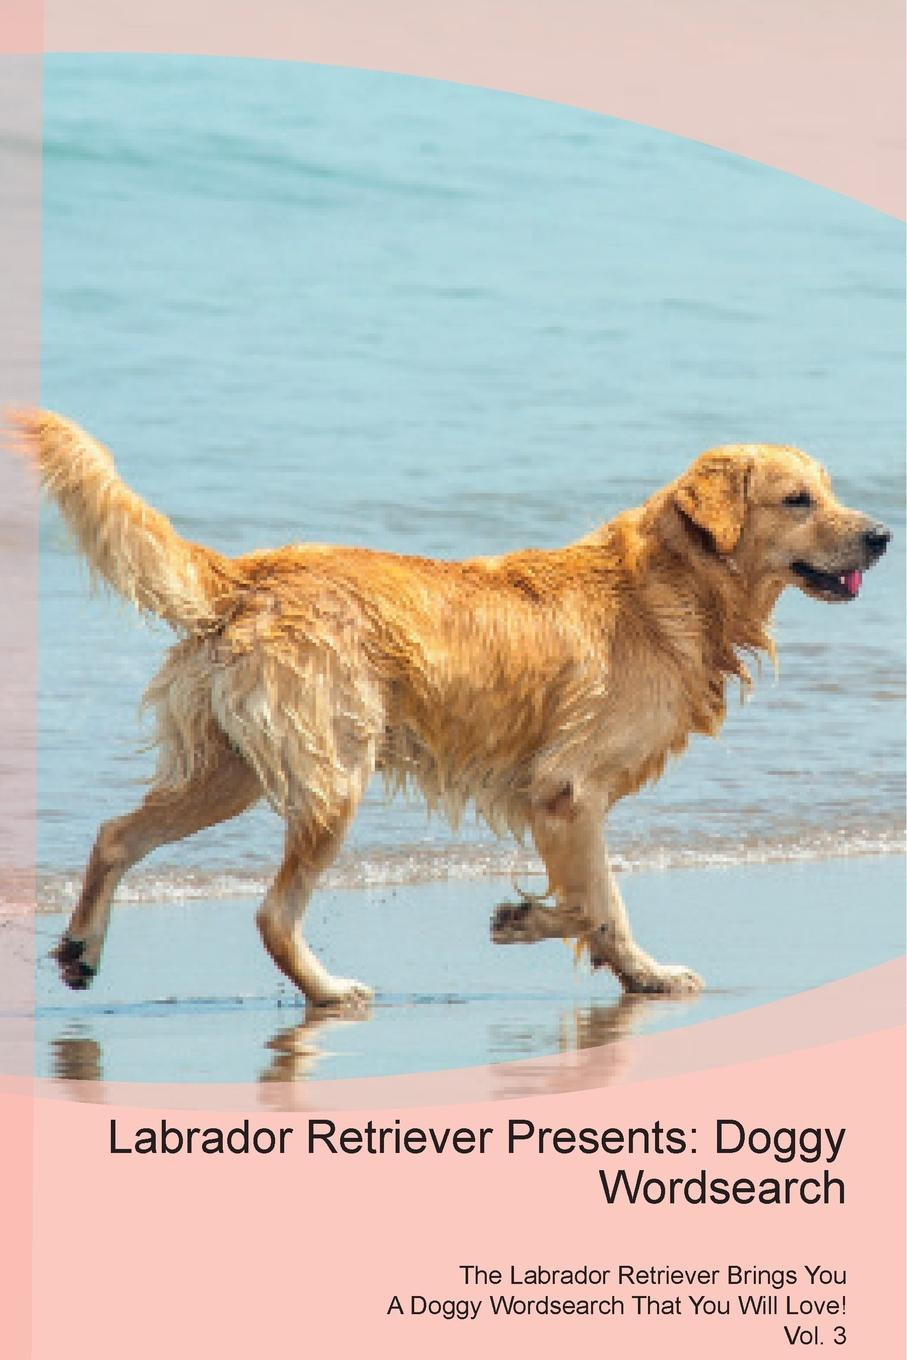 Doggy Puzzles Labrador Retriever Presents. Wordsearch The Brings You A That Will Love! Vol. 3